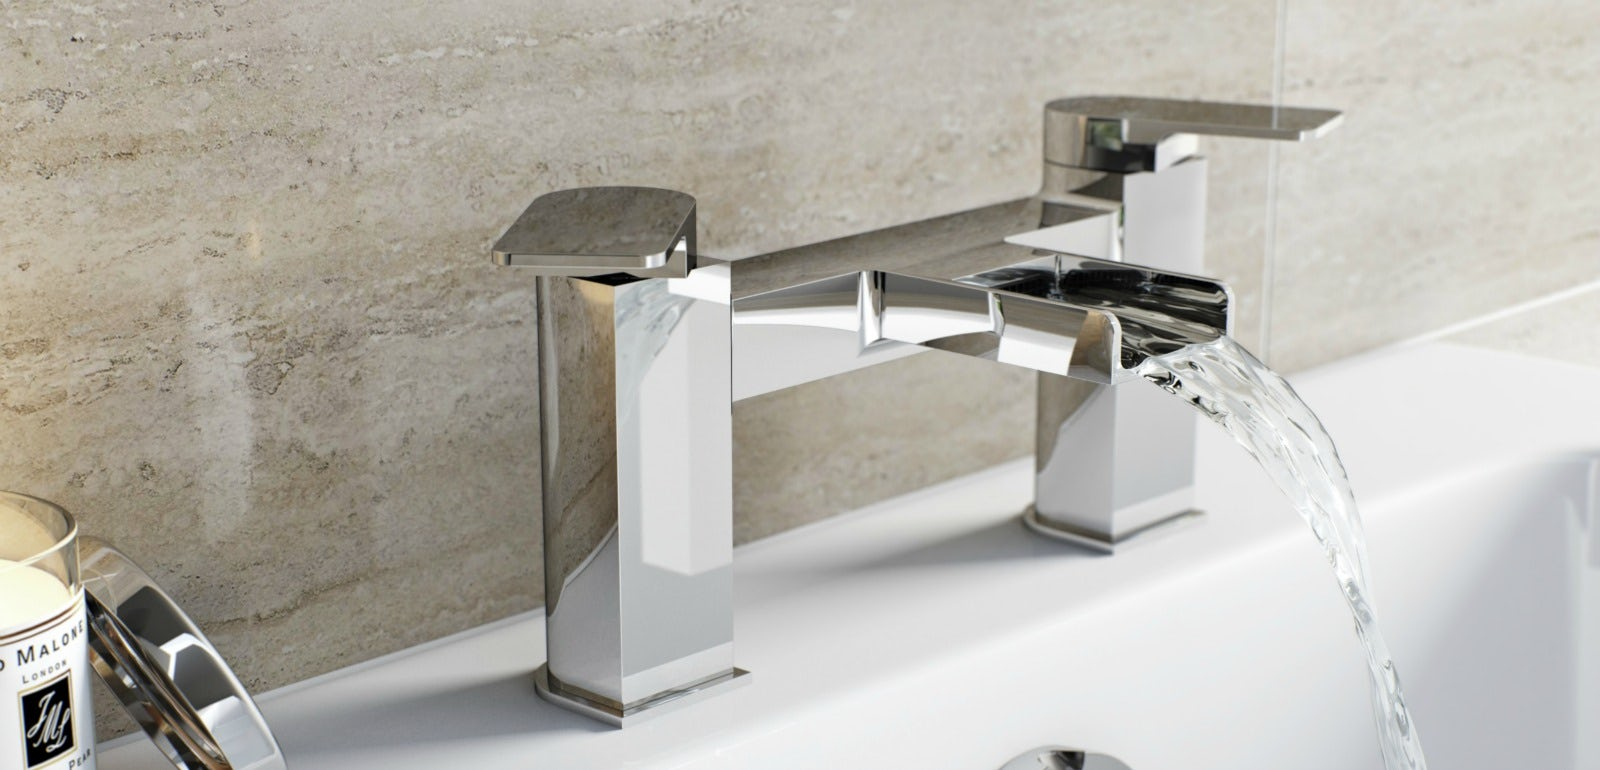 How To Fit Bath Taps Victoriaplum Com